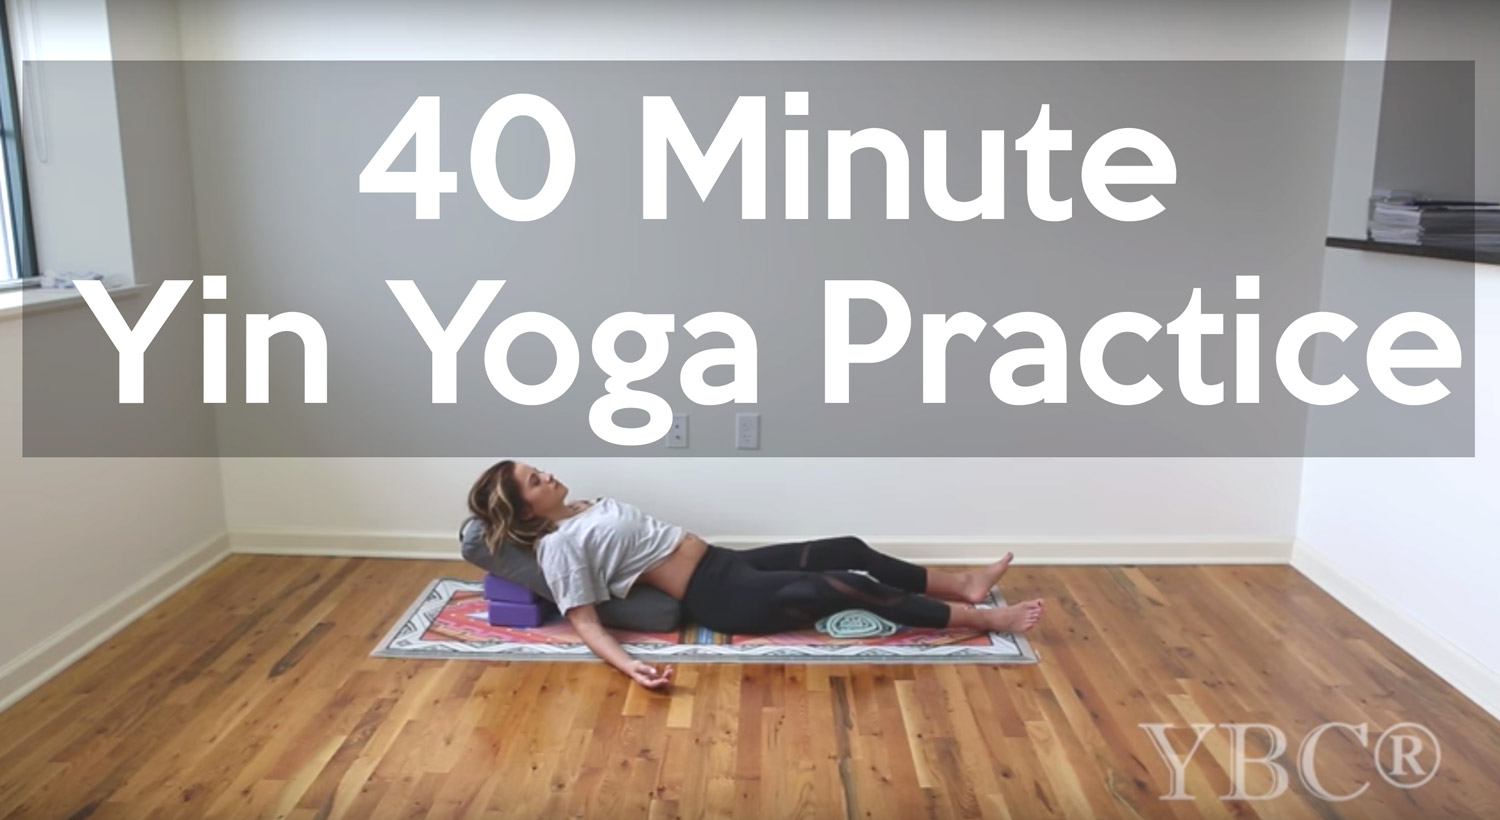 40 Minute Yin Yoga Practice - Pin on  Pinterest  now for easy reference later